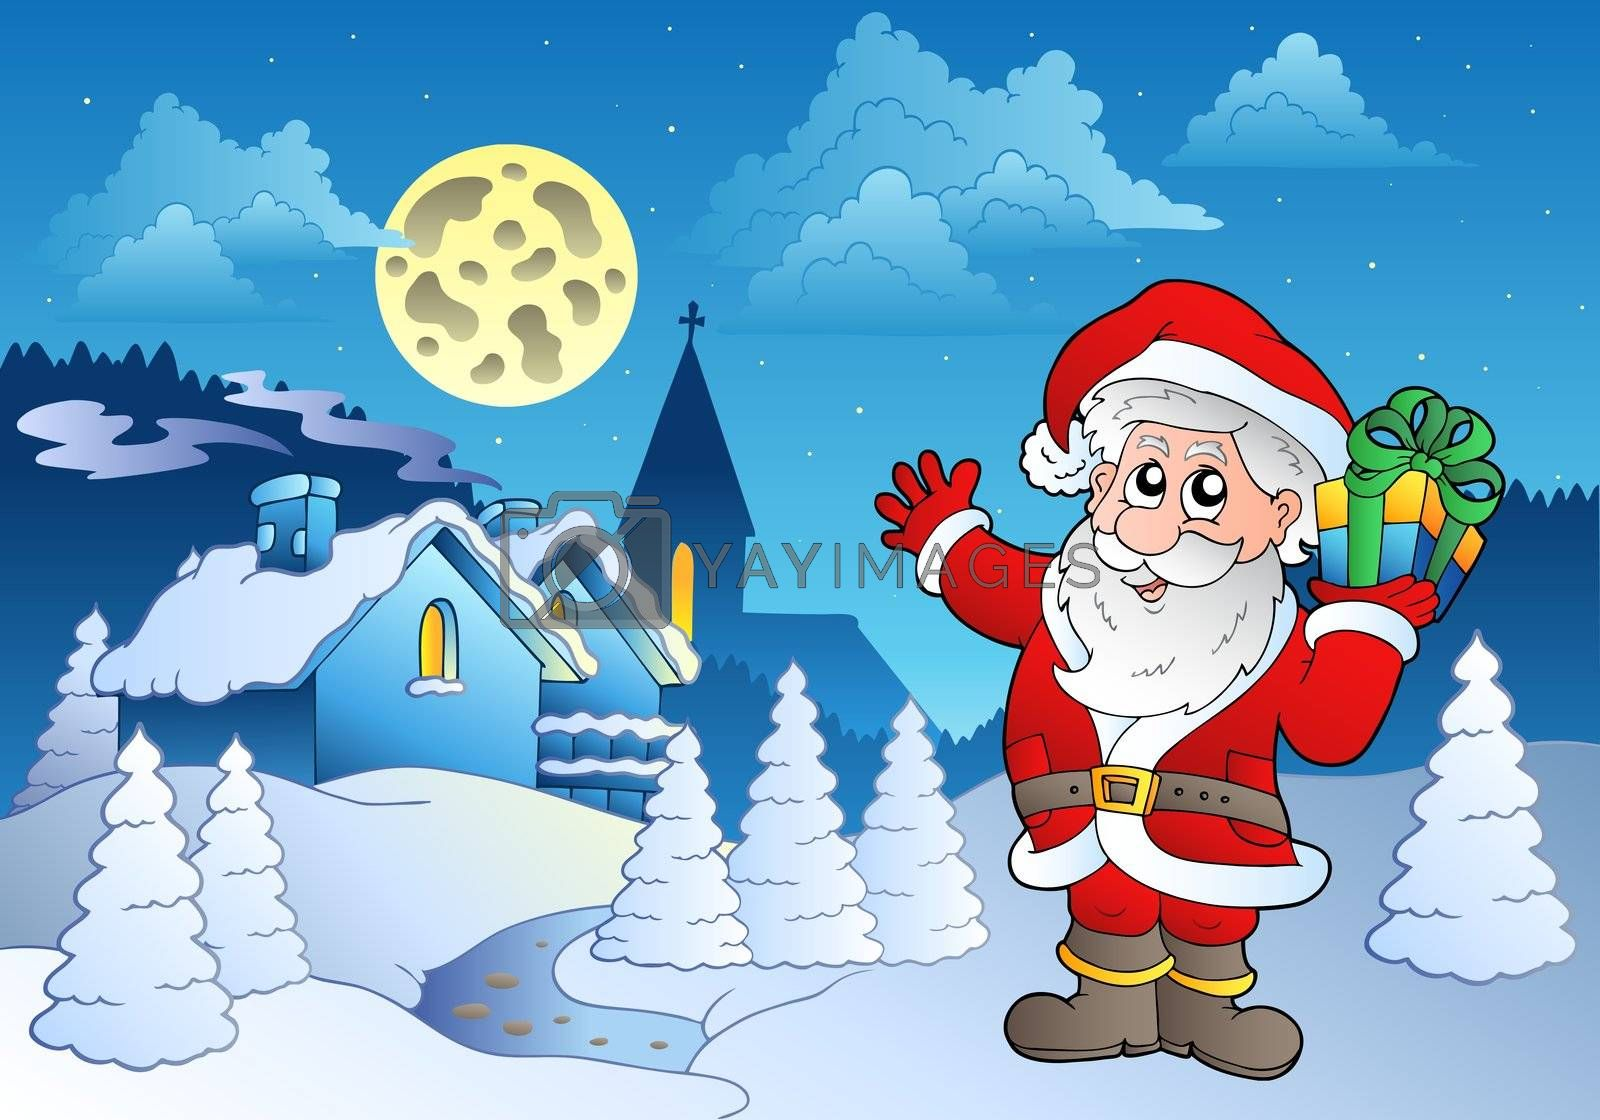 Santa Claus near small village 1 - vector illustration.